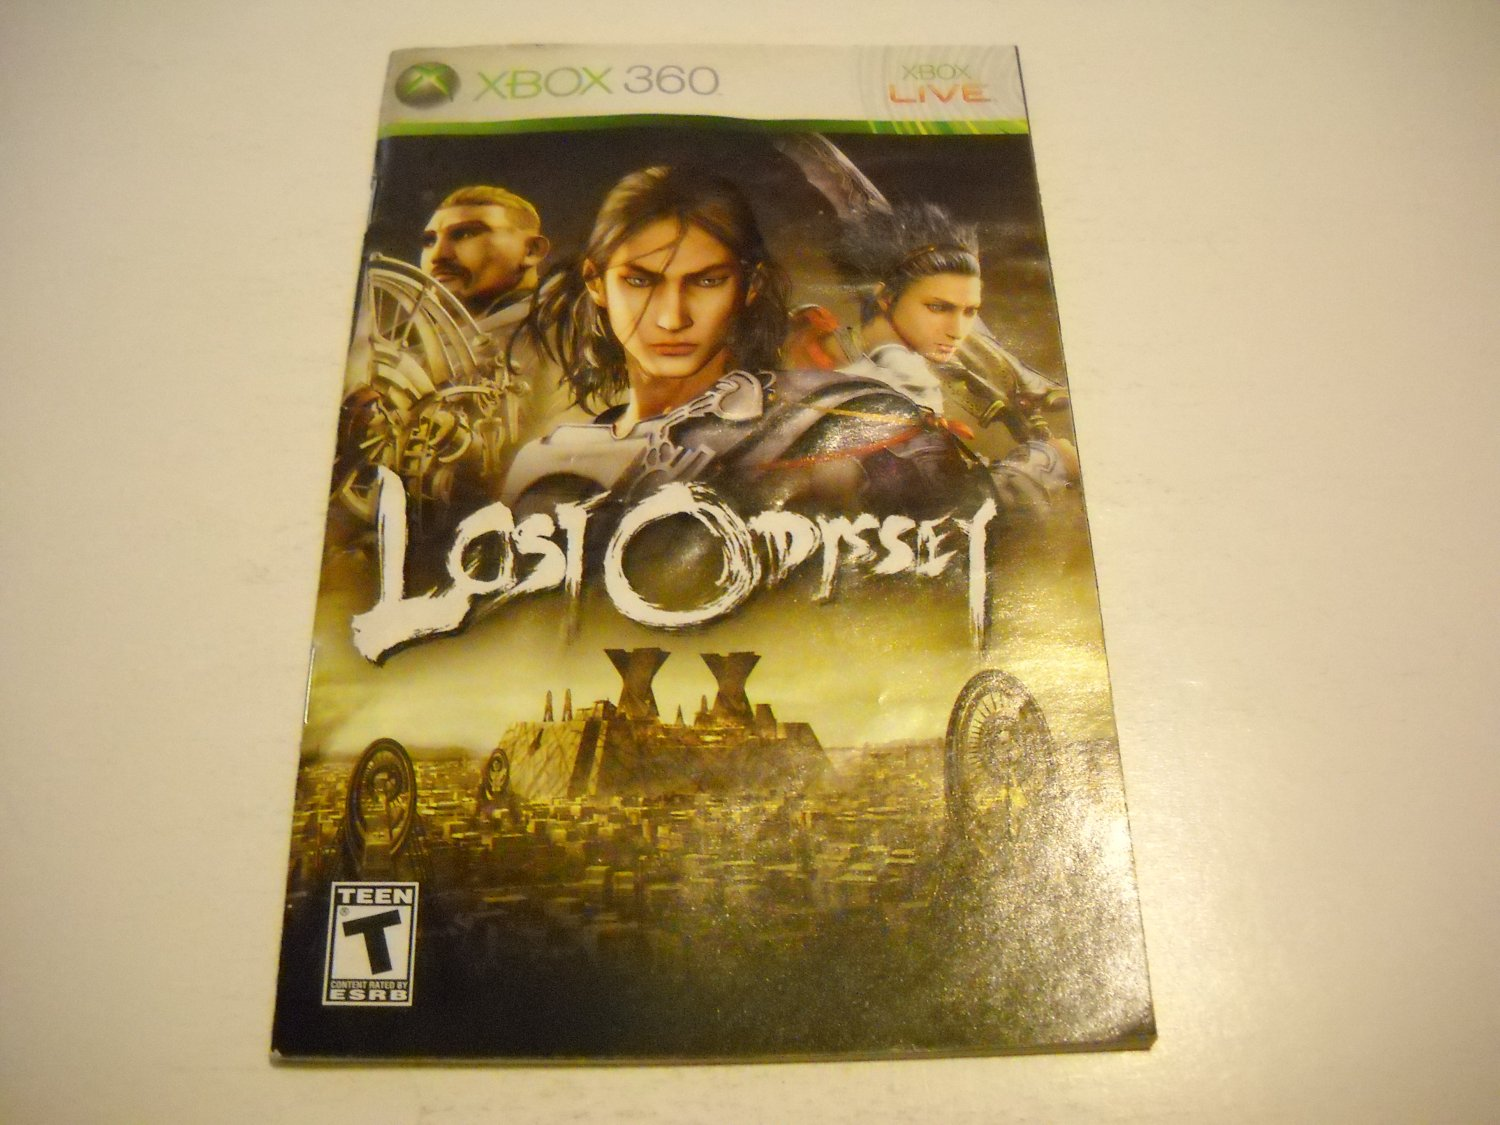 Manual ONLY ~  for Lost Odyssey   - Xbox 360 Instruction Booklet